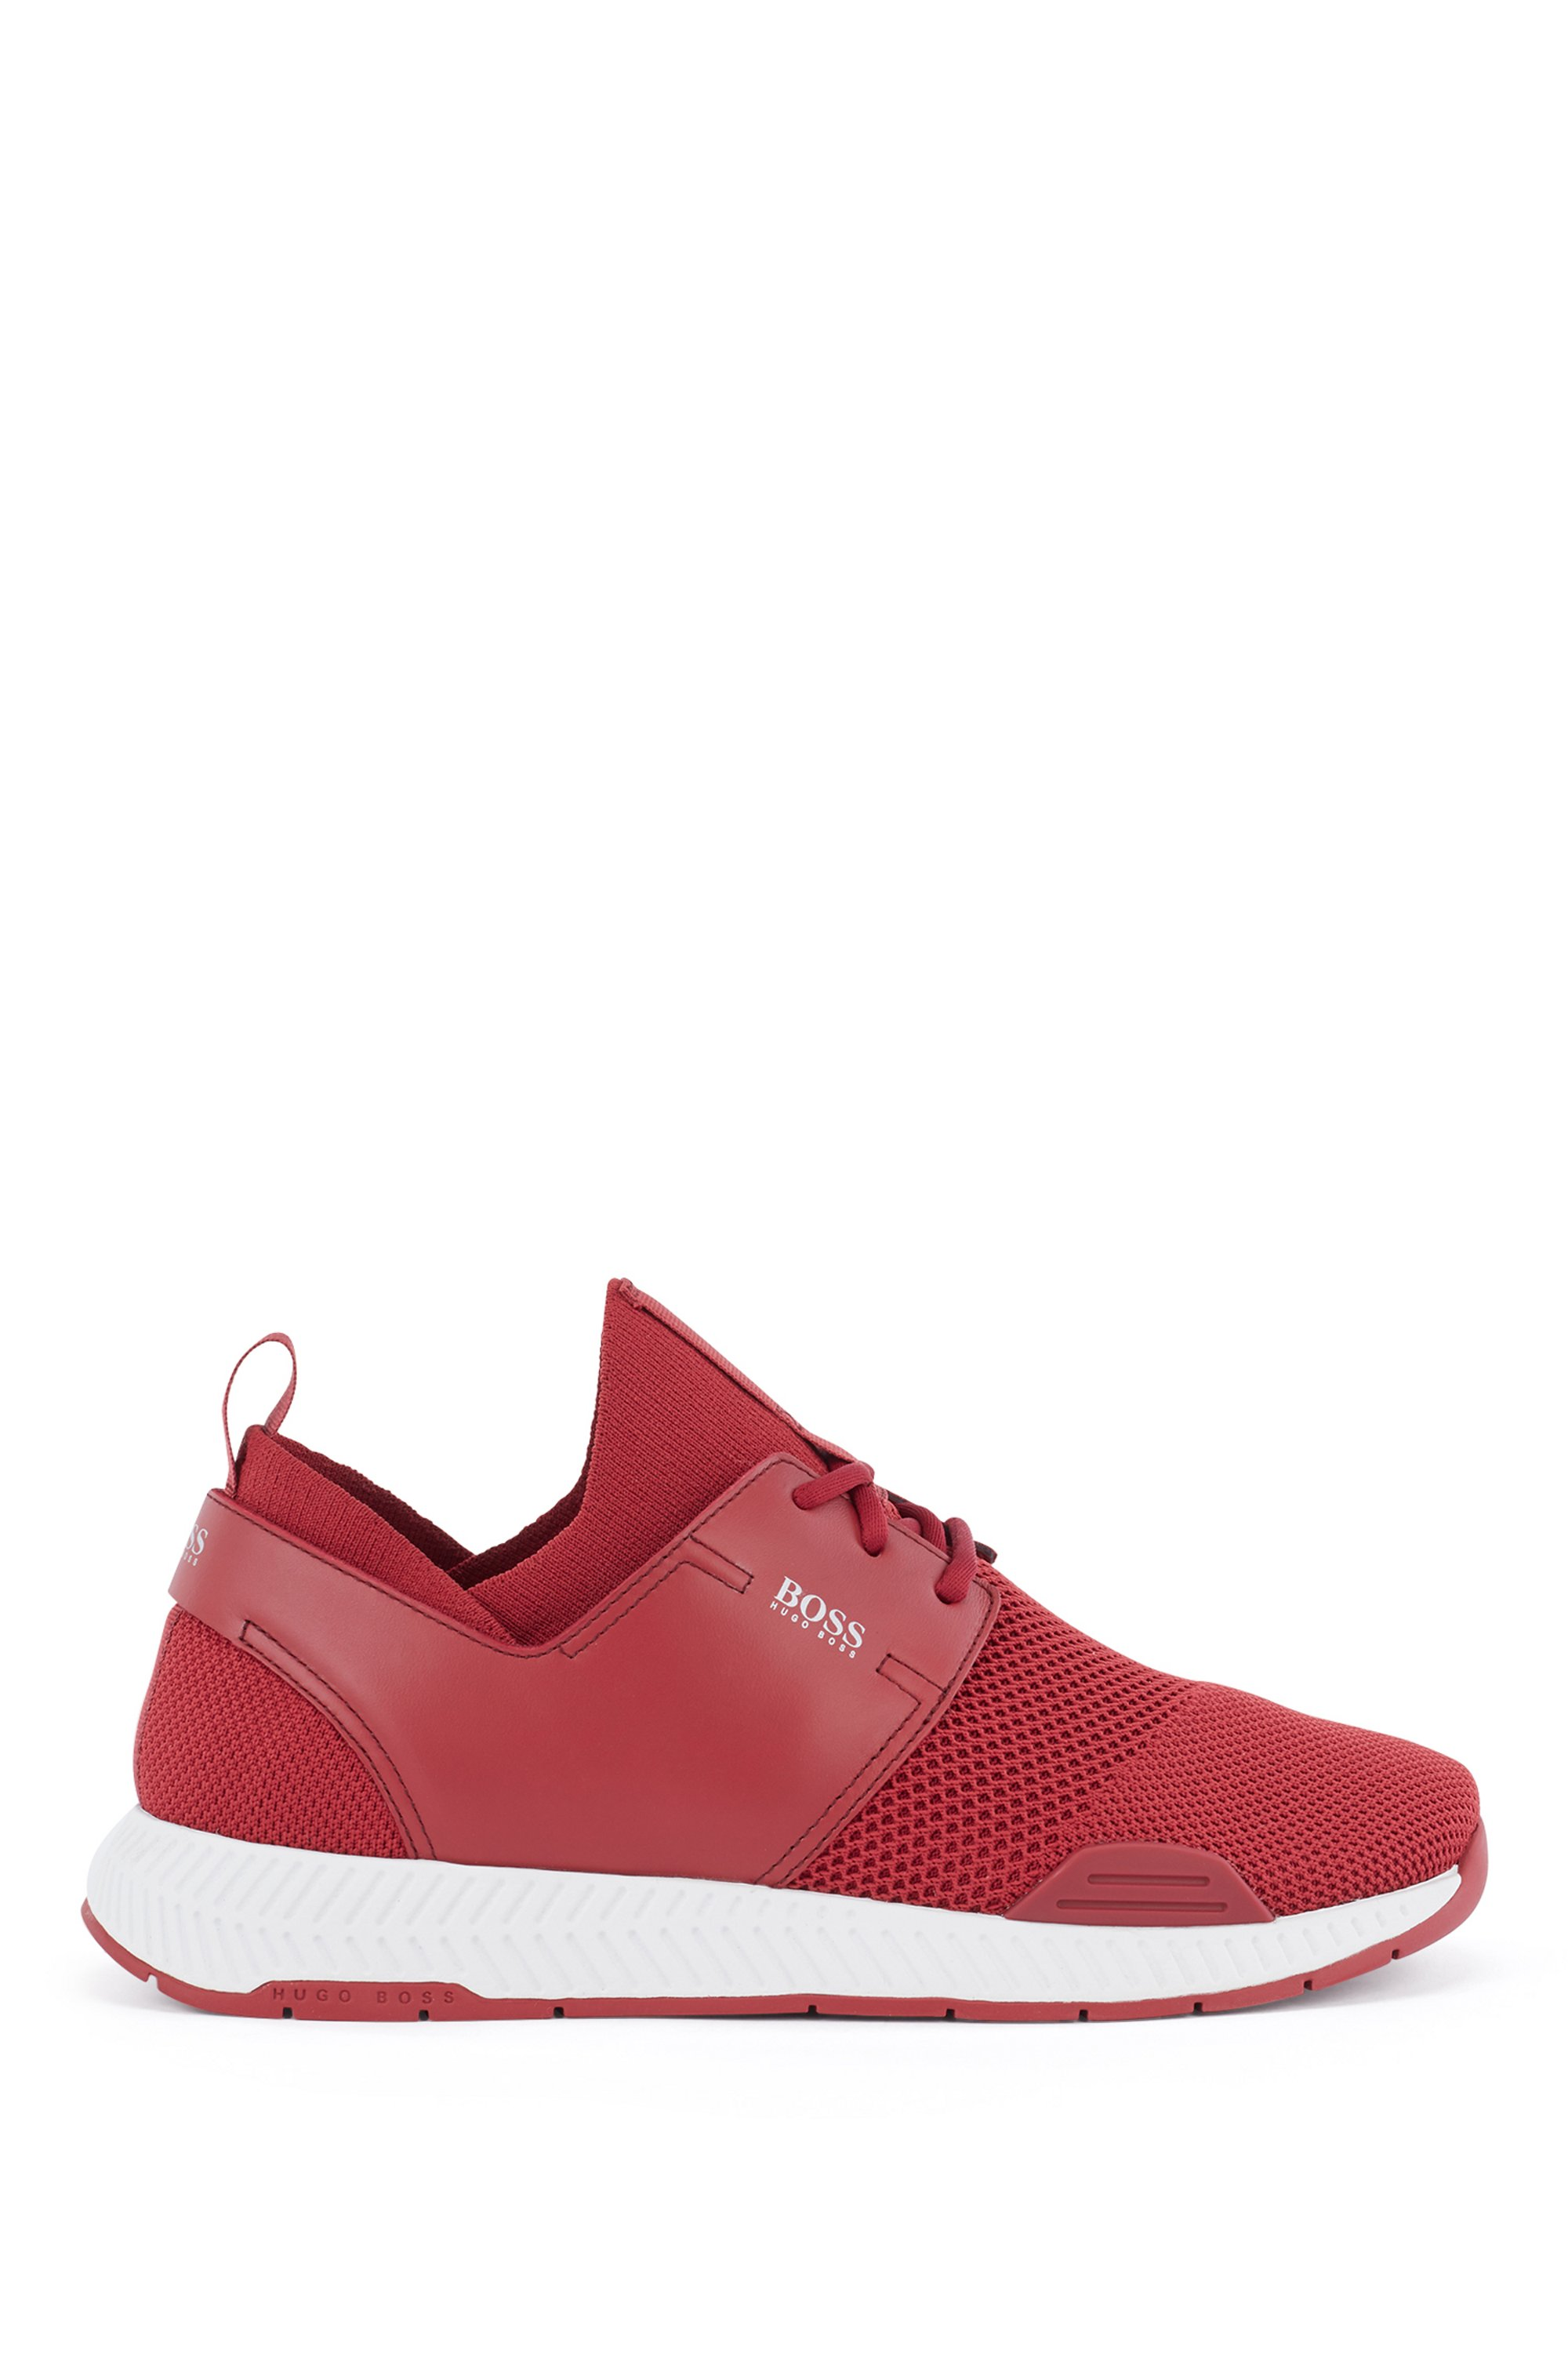 Unisex stretch-knit trainers with leather panels, Red